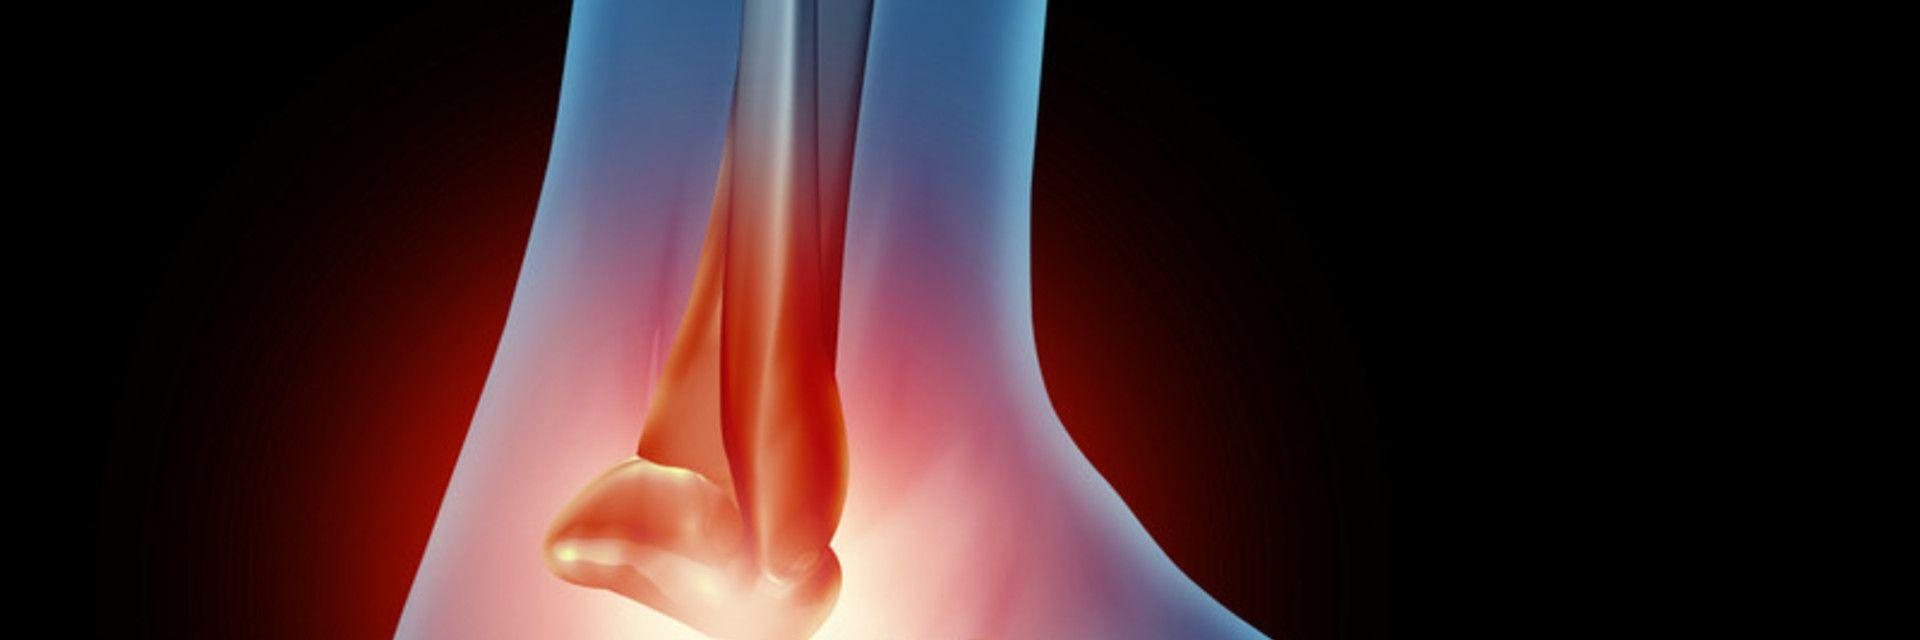 FAQs About Ankle Sprain Prevention & Treatment